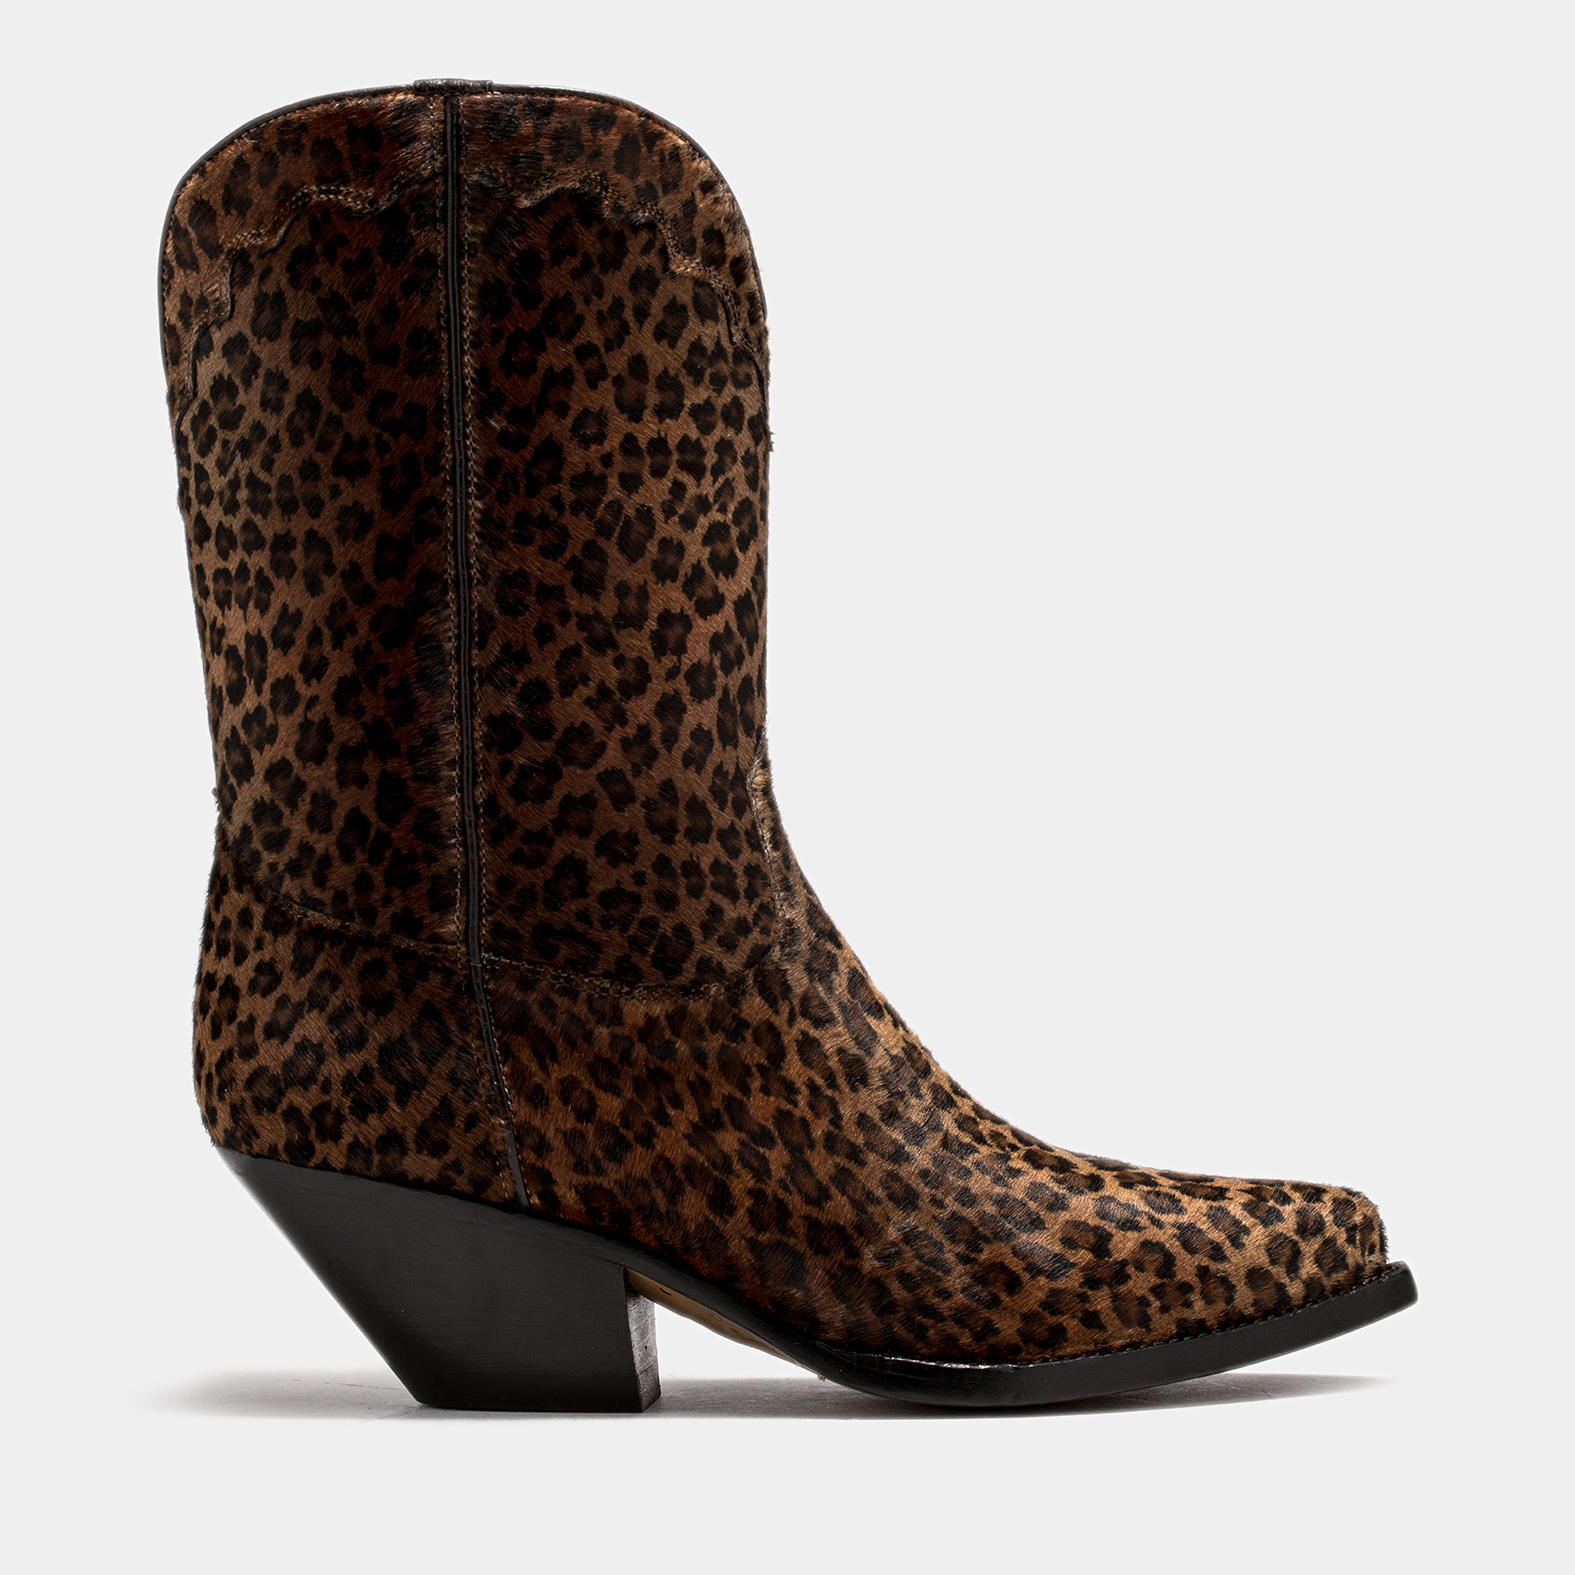 BUTTERO: ELISE DURANGO BOOTS IN SPOTTED PONY SKIN